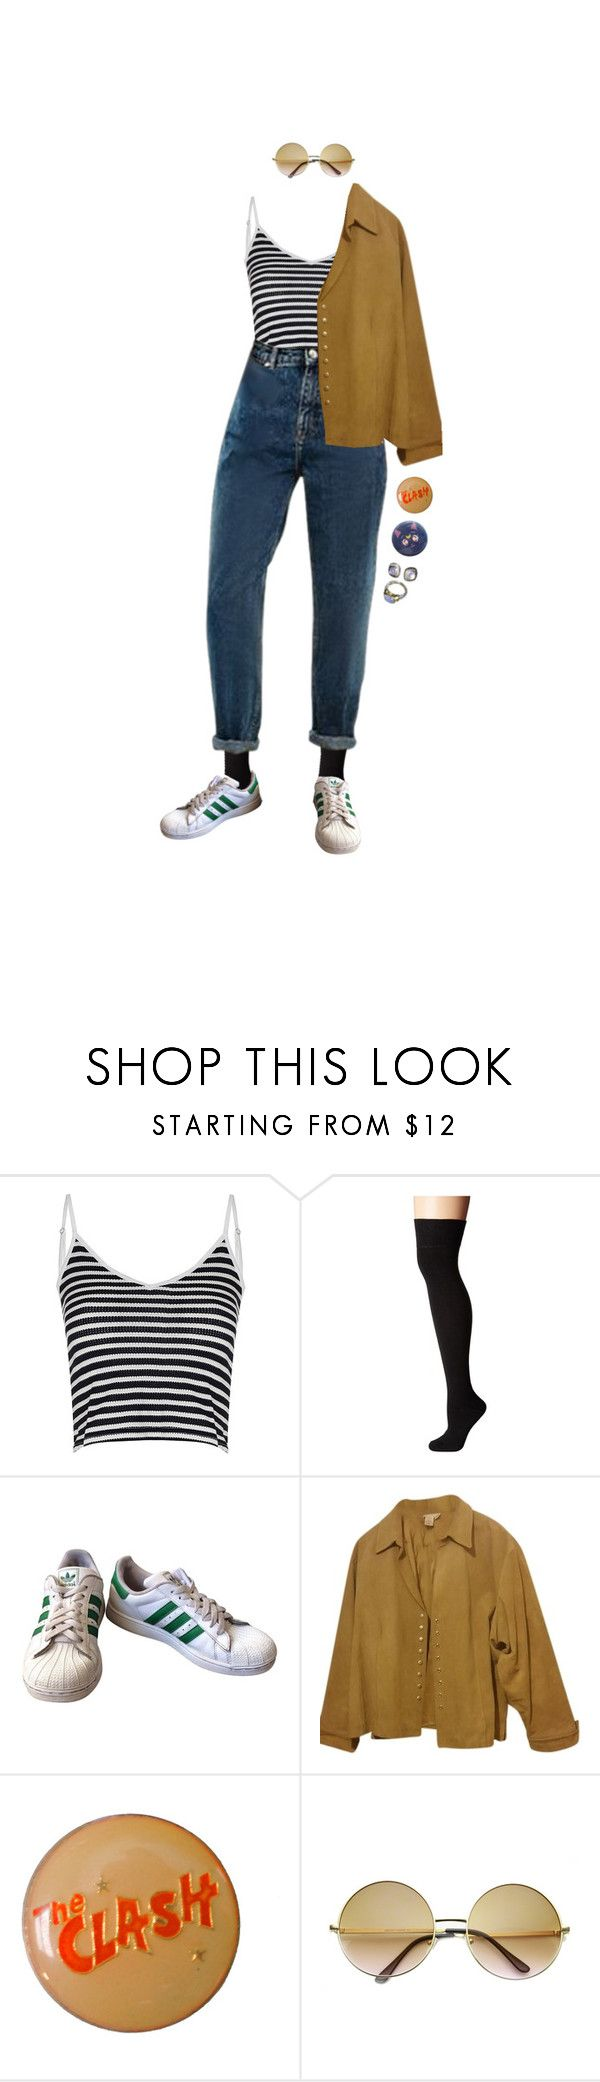 """""""everything."""" by flowersoflife ❤ liked on Polyvore featuring Glamorous, Socksmith, adidas, Coldwater Creek, ZeroUV, David Yurman and plus size clothing"""